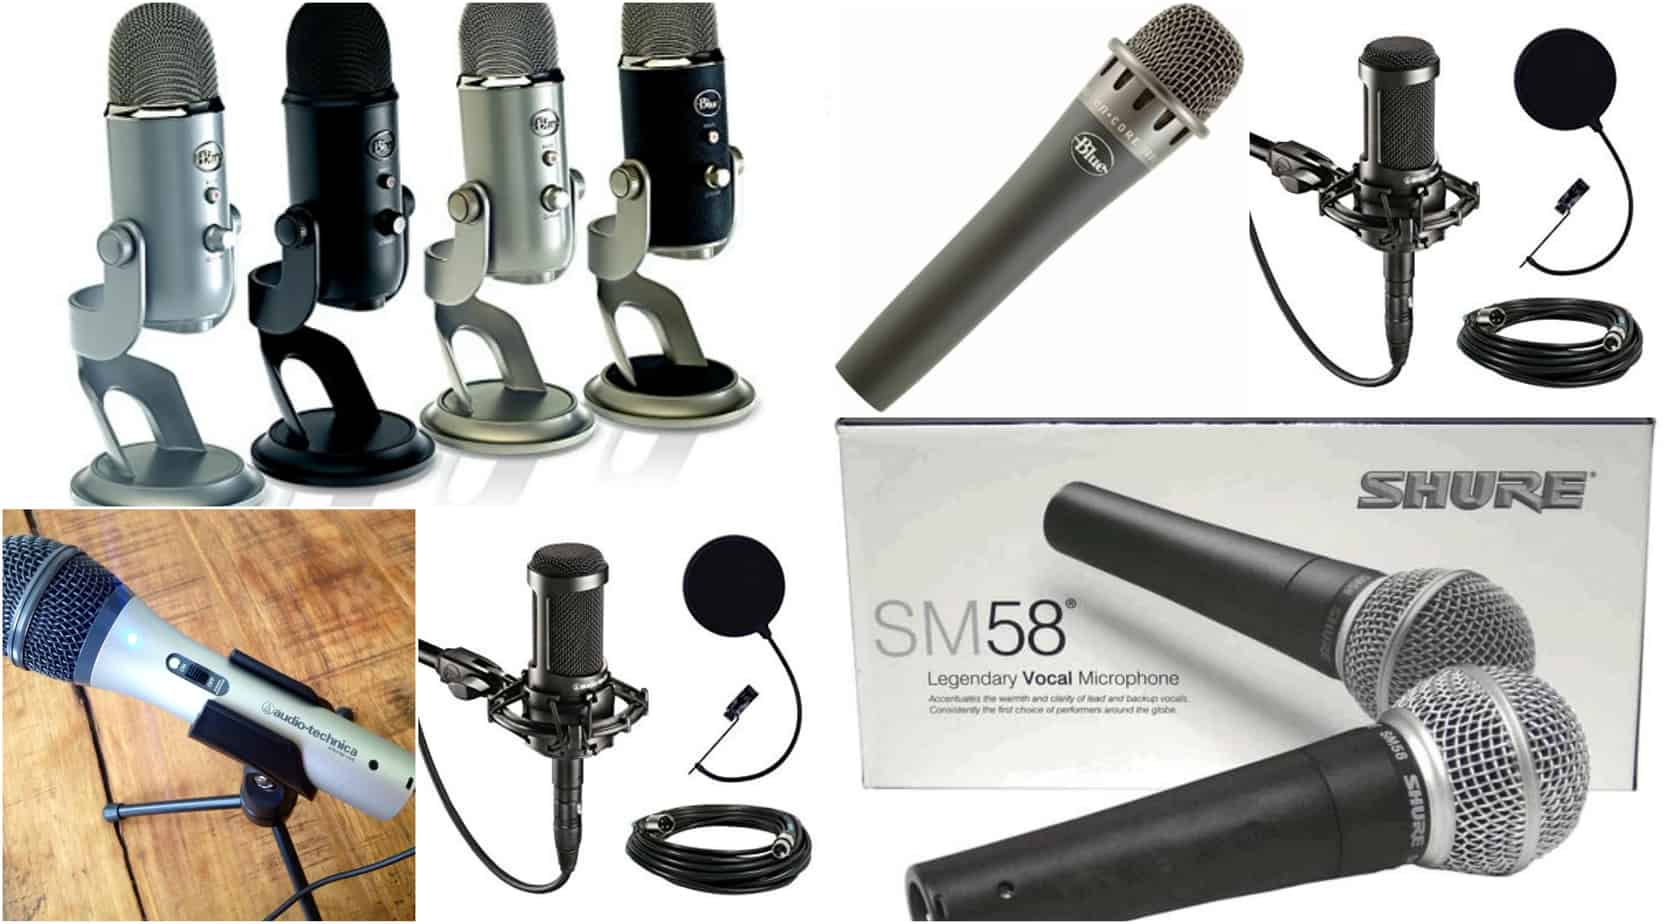 25 Of The Best Podcast Microphones Discover Podcasts Noise Filter For Stereo System Dynamic Typically Provide A More Vibrant Sound With Casual Feel And Condenser Are Usually Clear But Can Pick Up Ambient